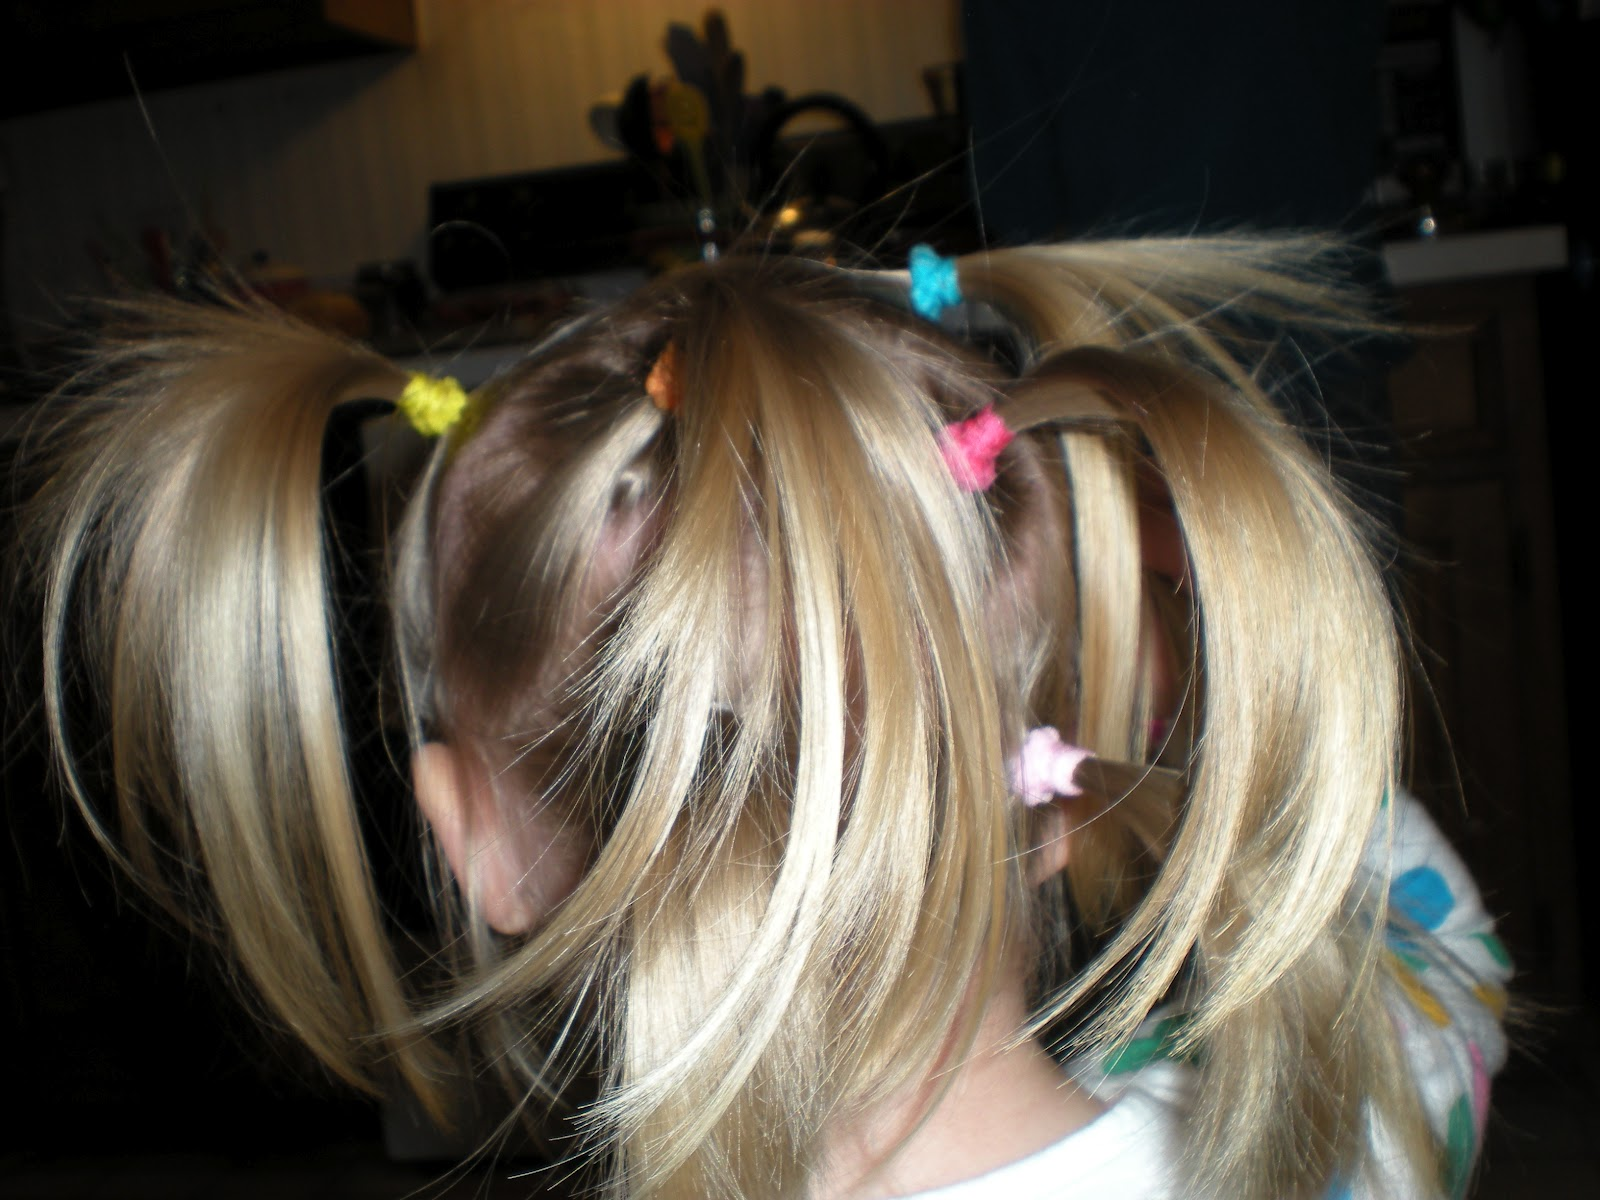 Tacky Day Hair Ideas http://jennandchrisandkpr.blogspot.com/2012/04/crazy-hair-day-wacky-tacky-day.html